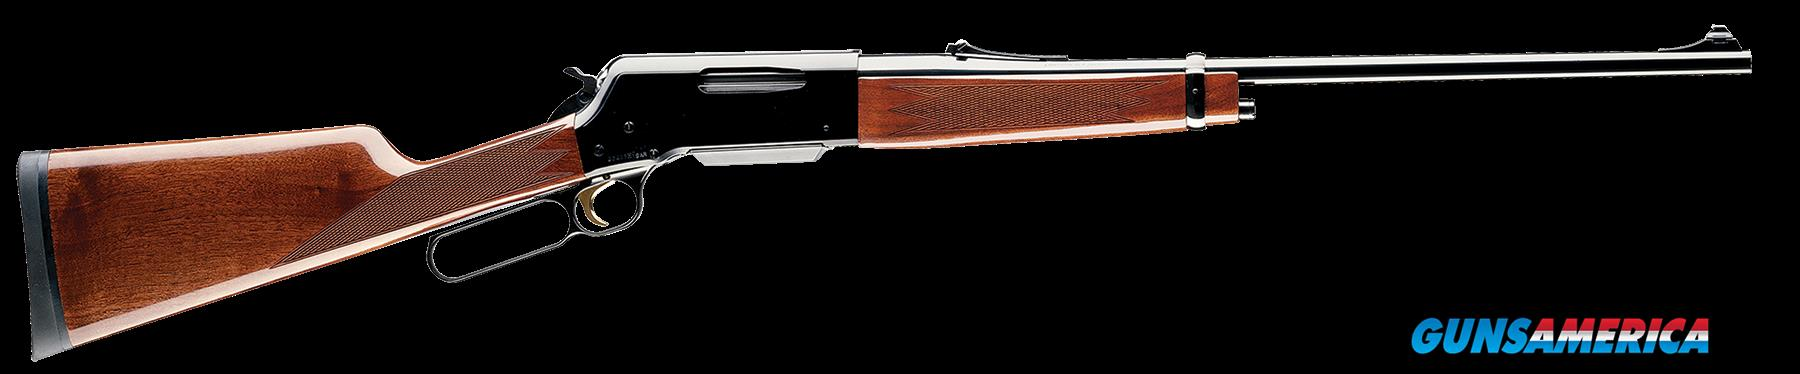 "Browning 034006111 BLR Lightweight 81 Lever 243 Winchester 20"" 4+1 Walnut Stock Blued  Guns > Rifles > Browning Rifles > Lever Action"